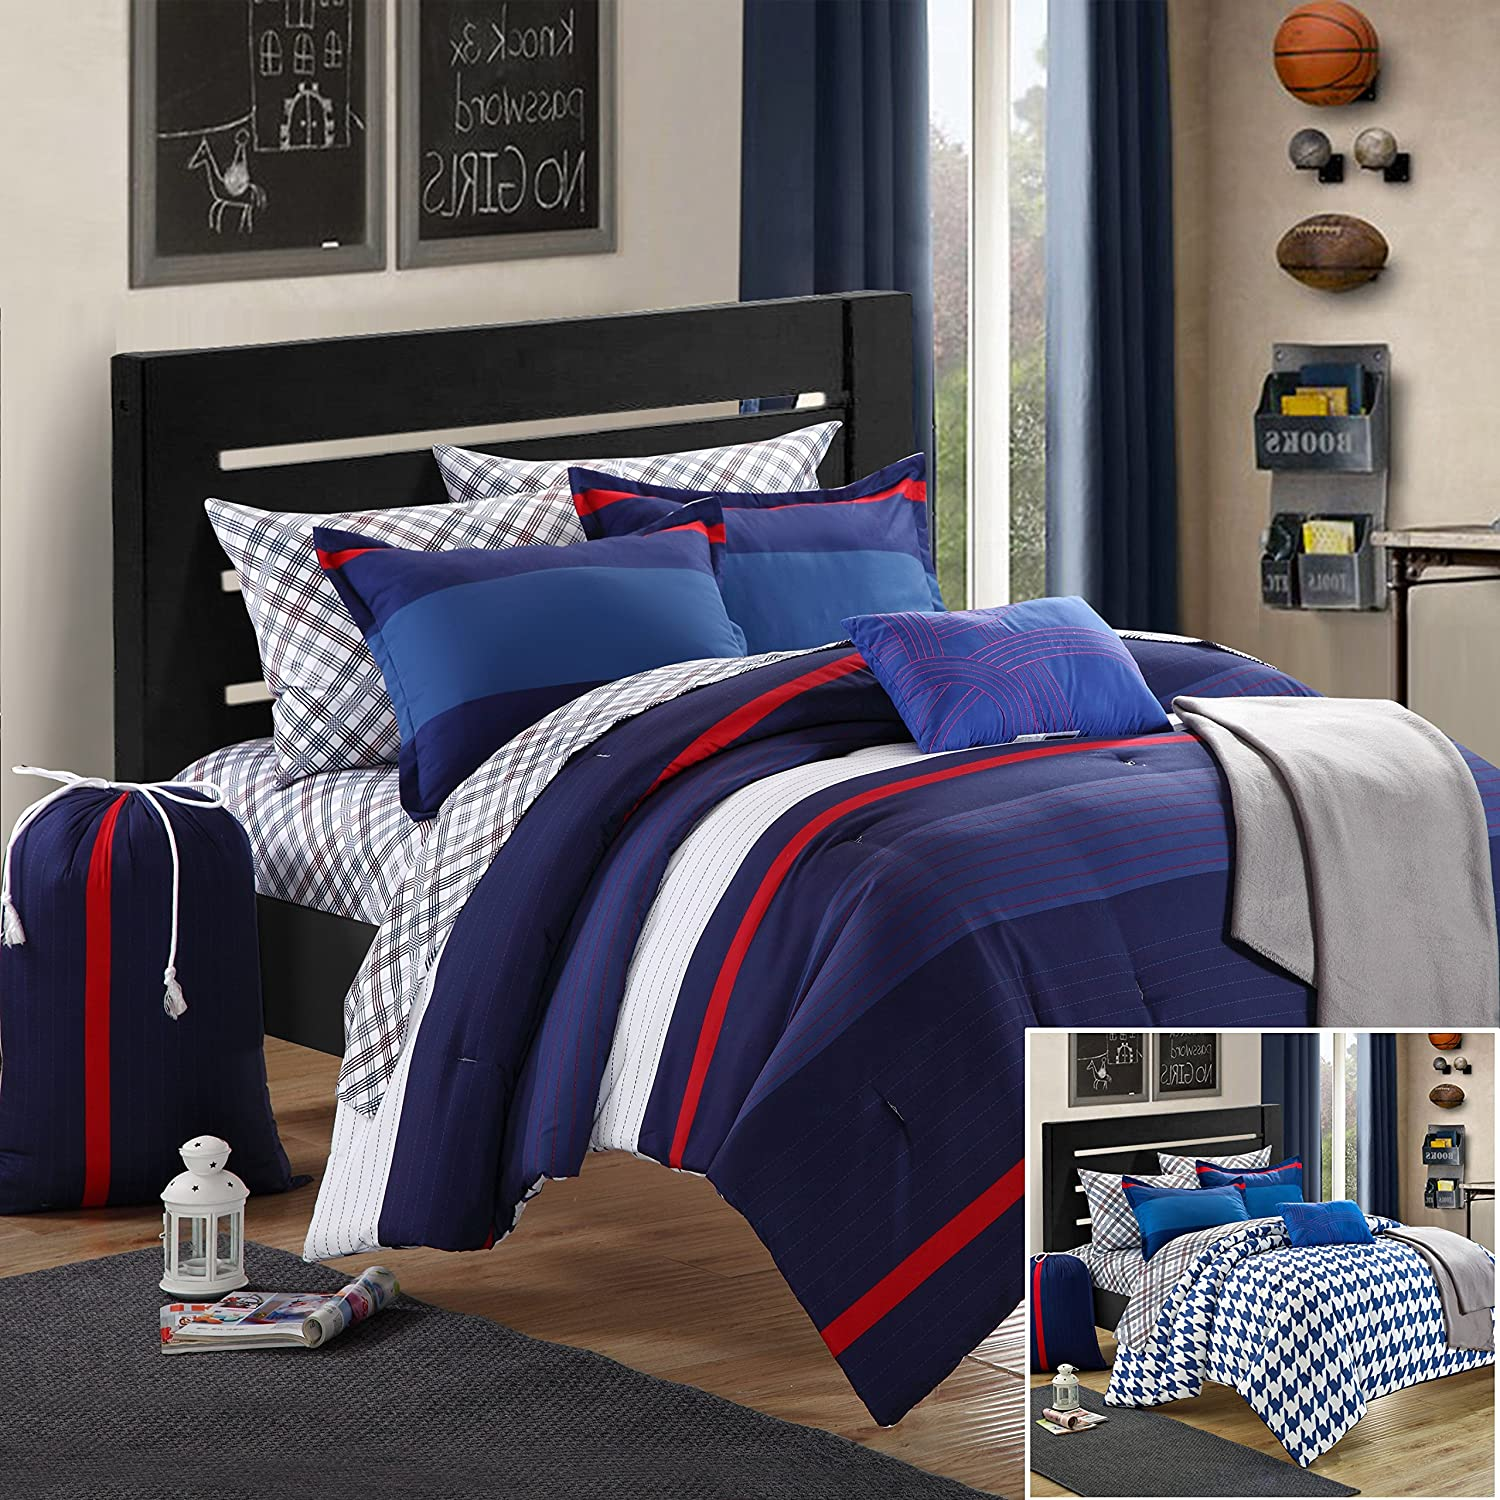 Chic Home Back to School Trevor 7-Piece Comforter Set Twin Size Xtra-Long, Shams Decorative Pillows and Sheet Set Included